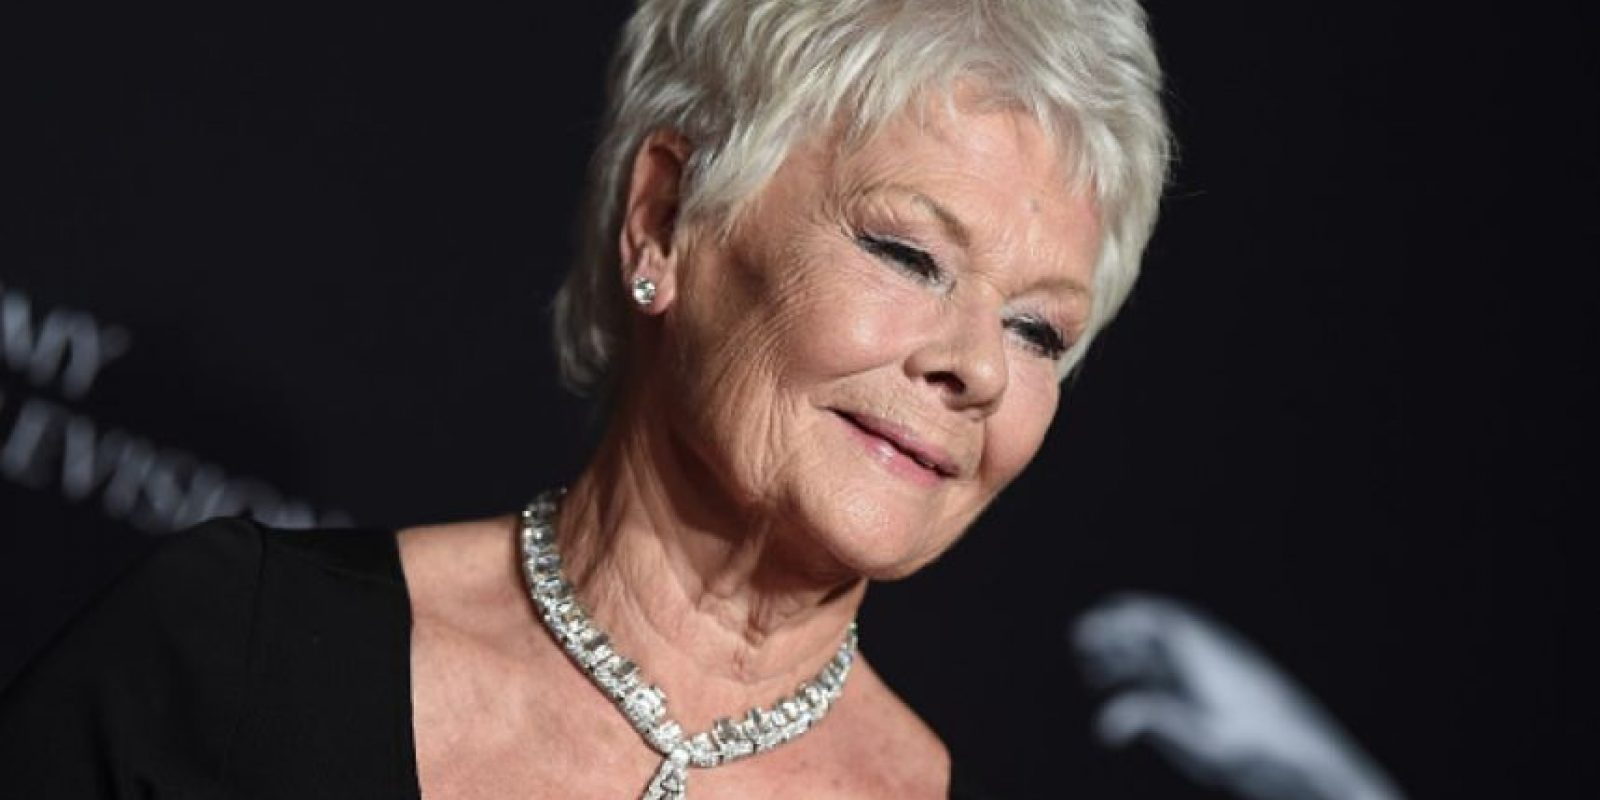 Es Judi Dench Foto: Getty Images